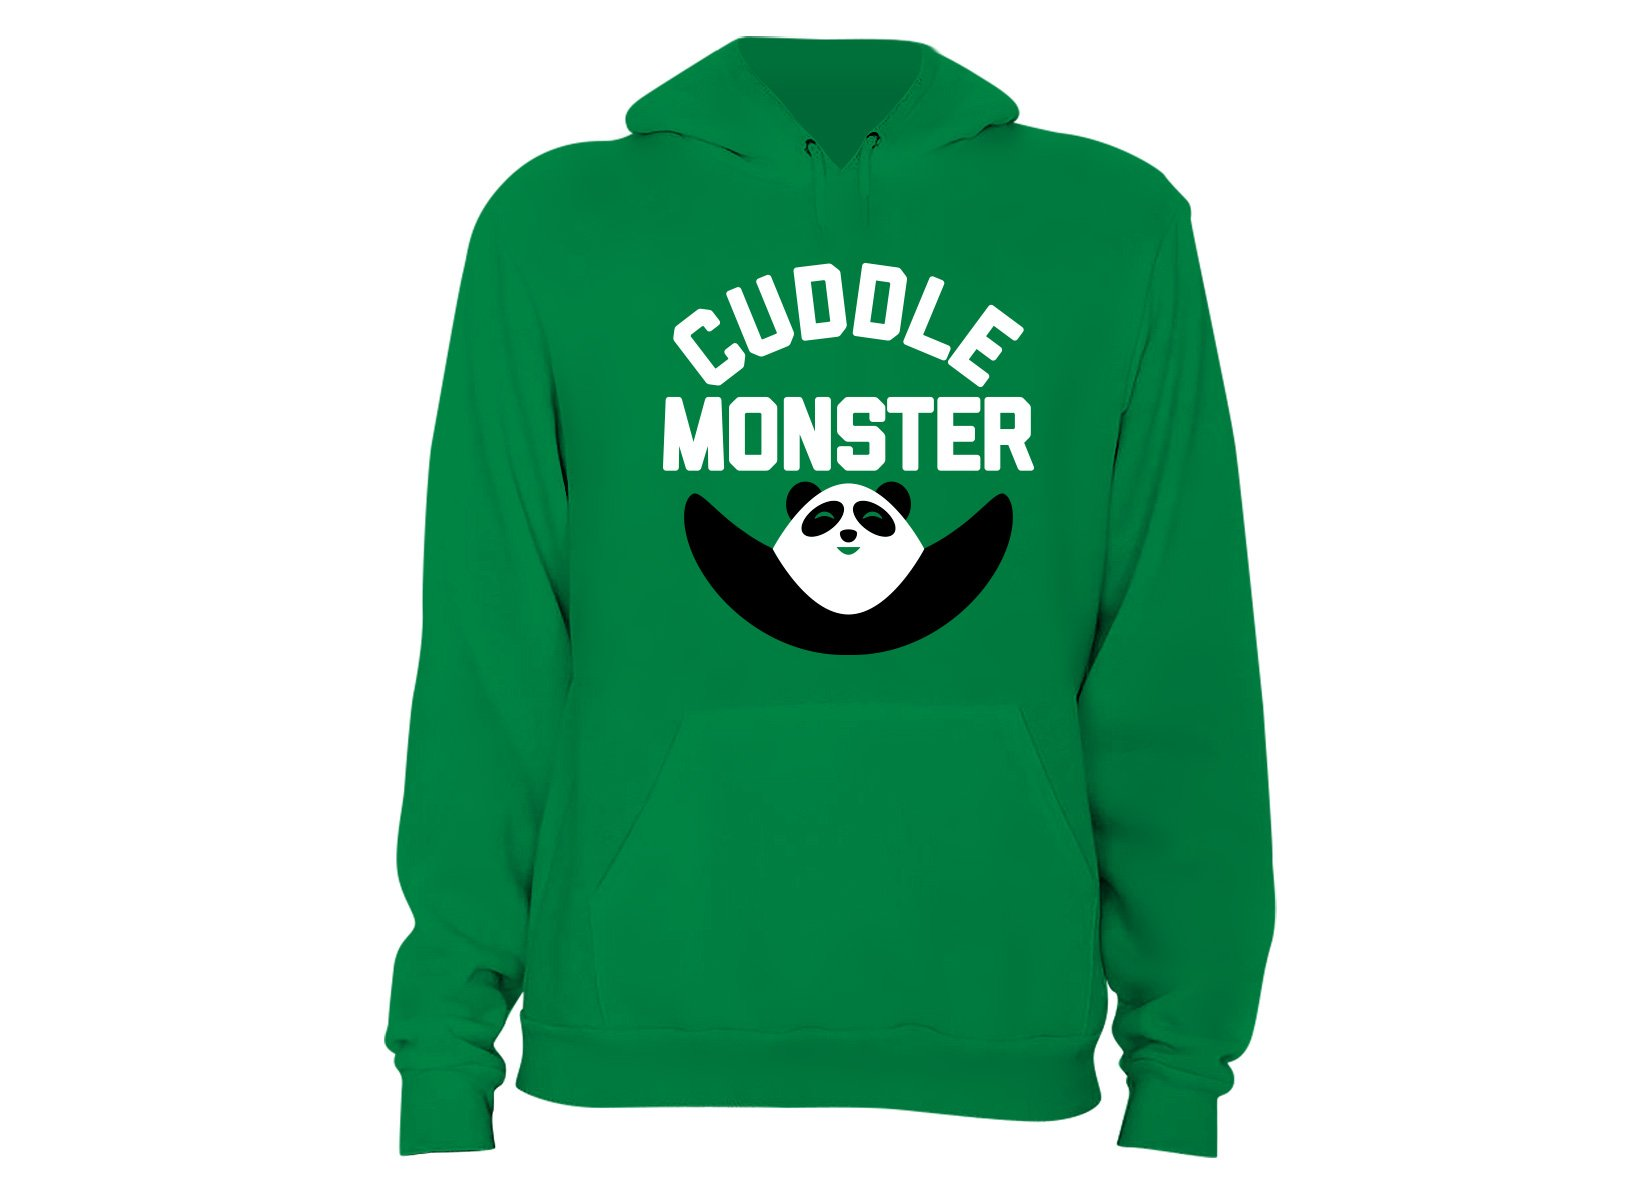 Cuddle Monster on Hoodie